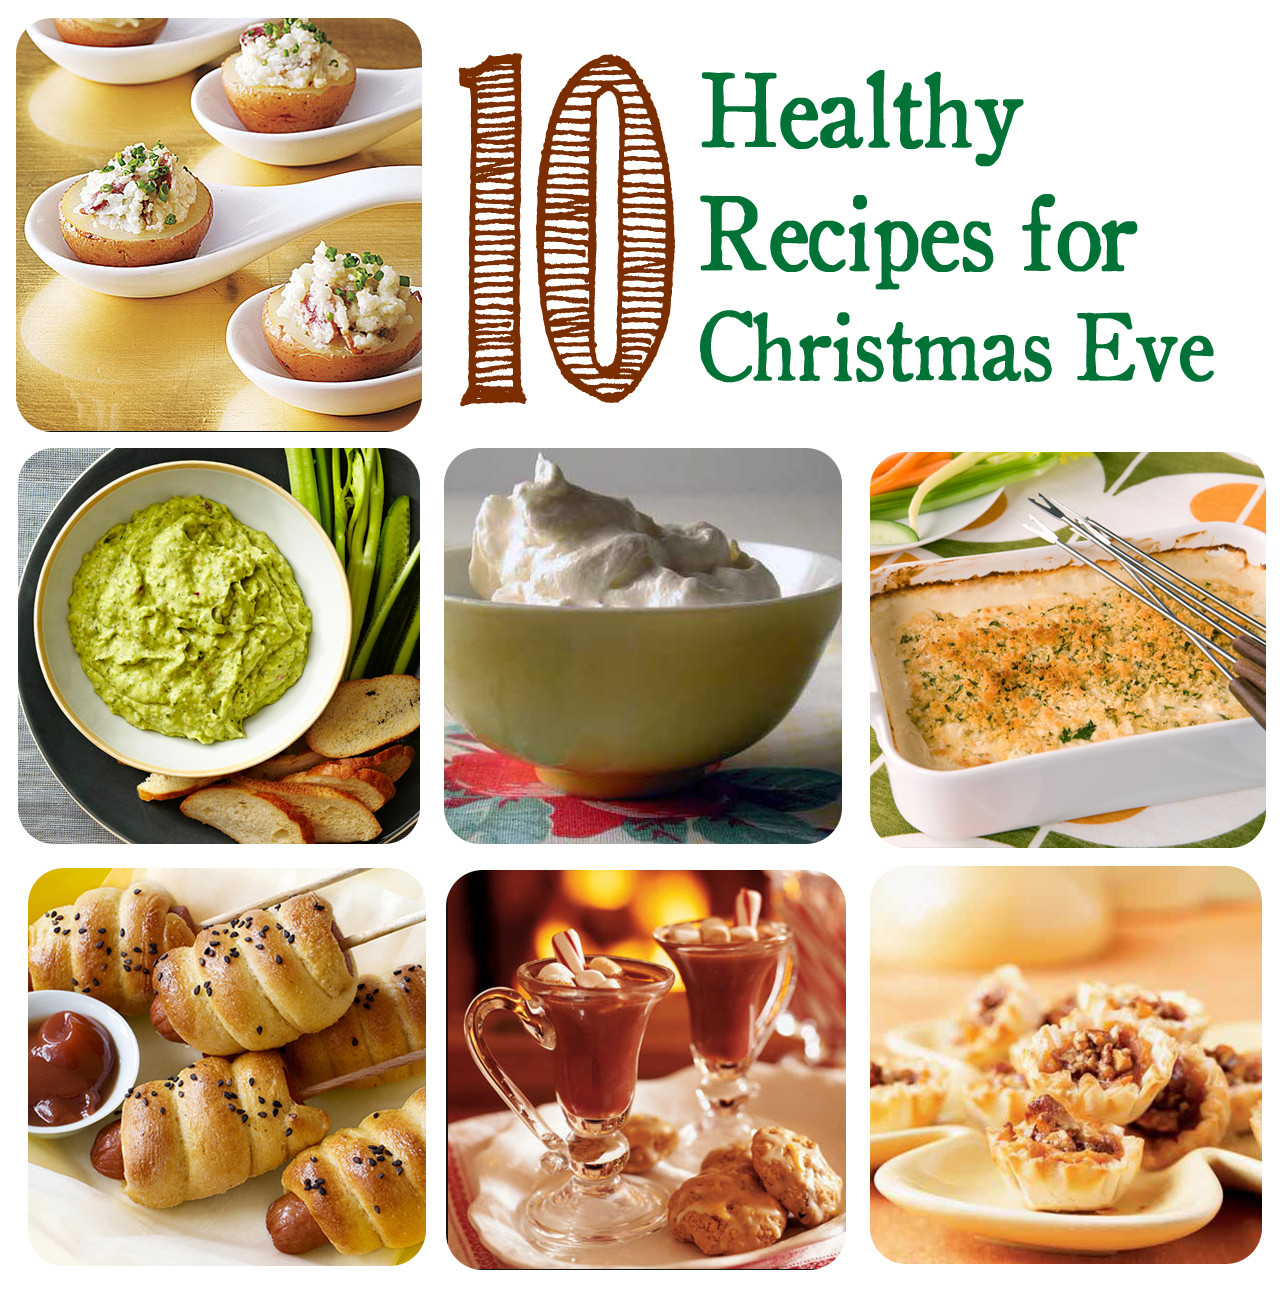 Healthy Christmas Appetizers  My Inspired Home Christmas Eve Healthy Appetizers